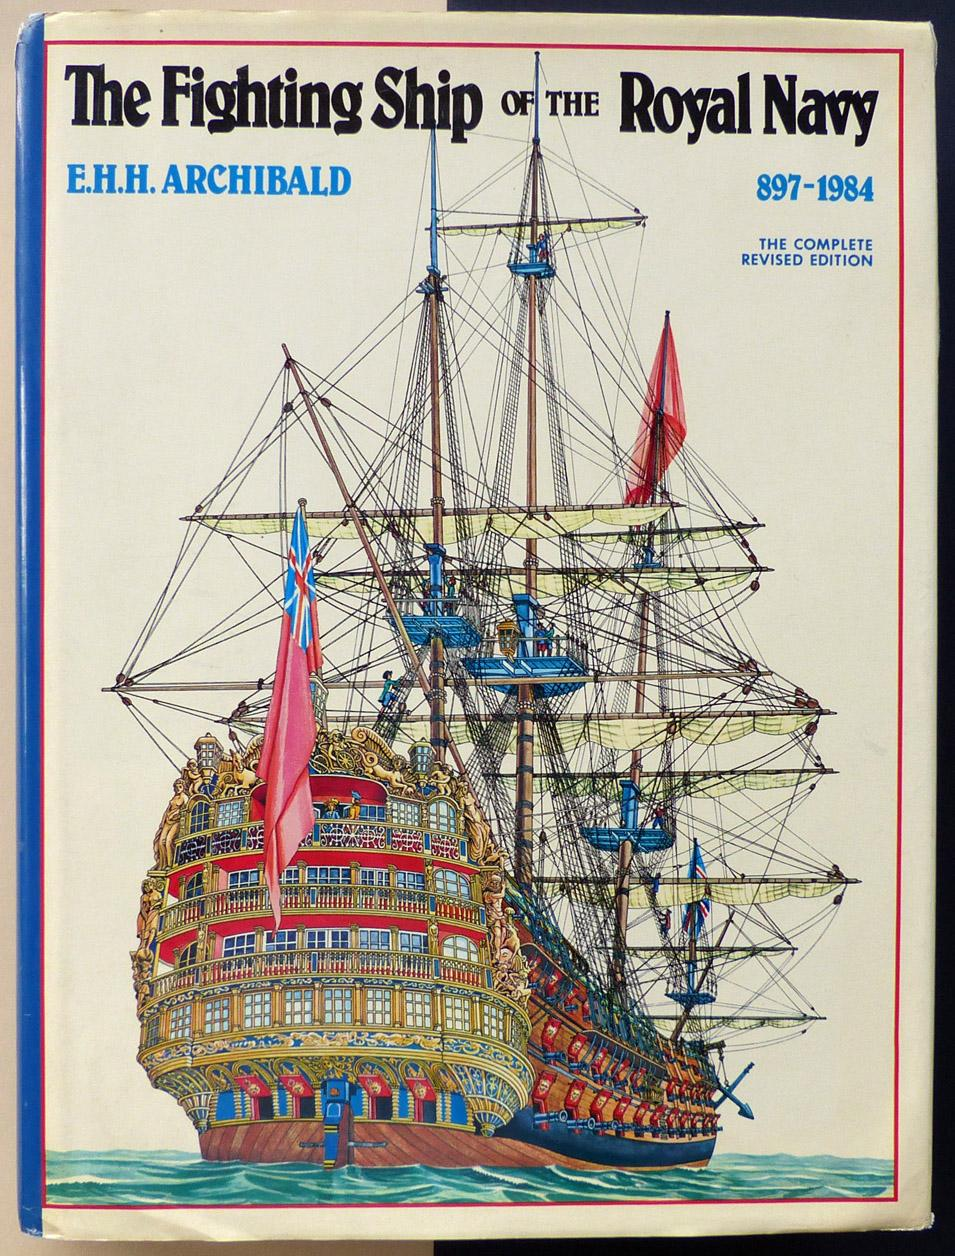 The Fighting Ship of the Royal Navy (897-1984). - ARCHIBALD, E.H.H.